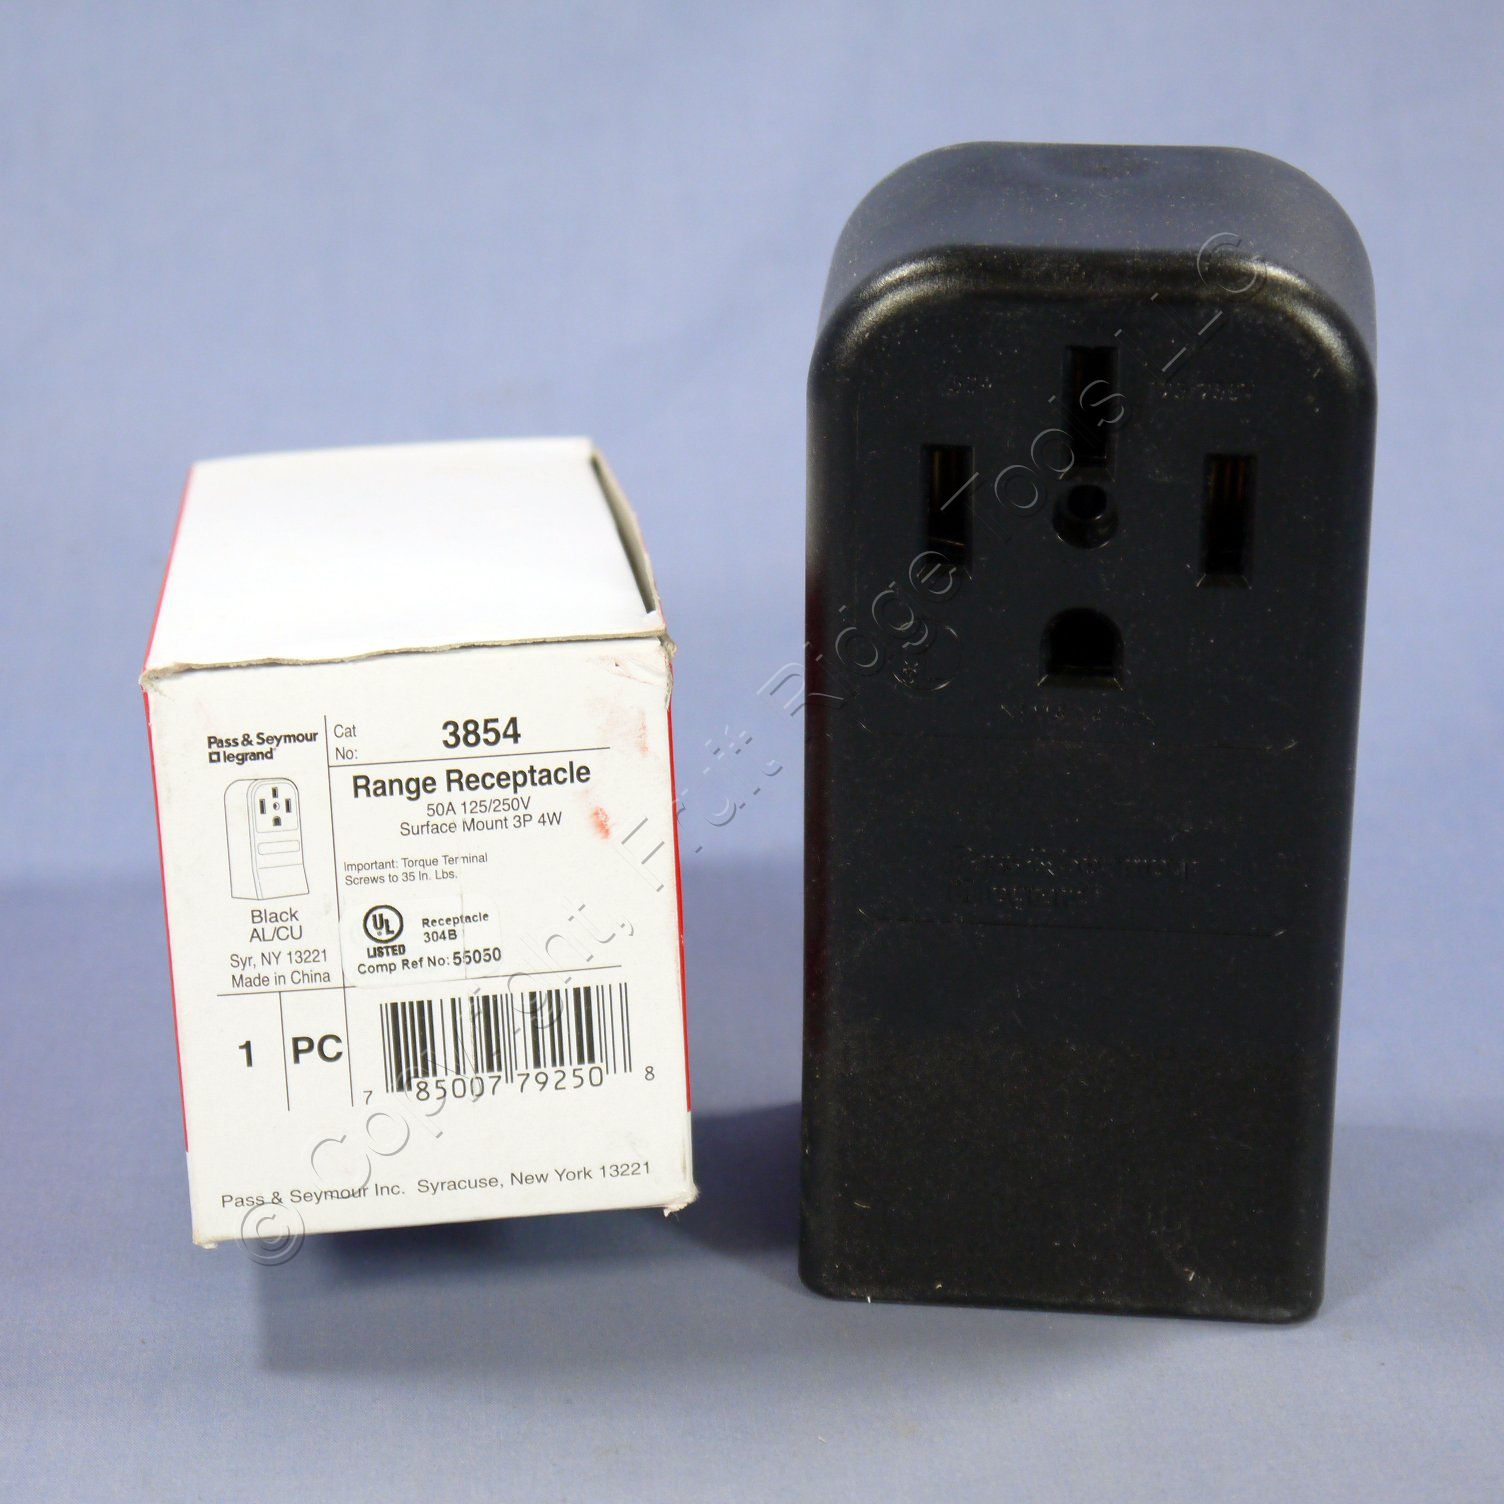 Ps Range Oven Stove Surface Mount Receptacle Nema 14 50 50a 125 Plug Wiring South Africa 250v 3854 Boxed